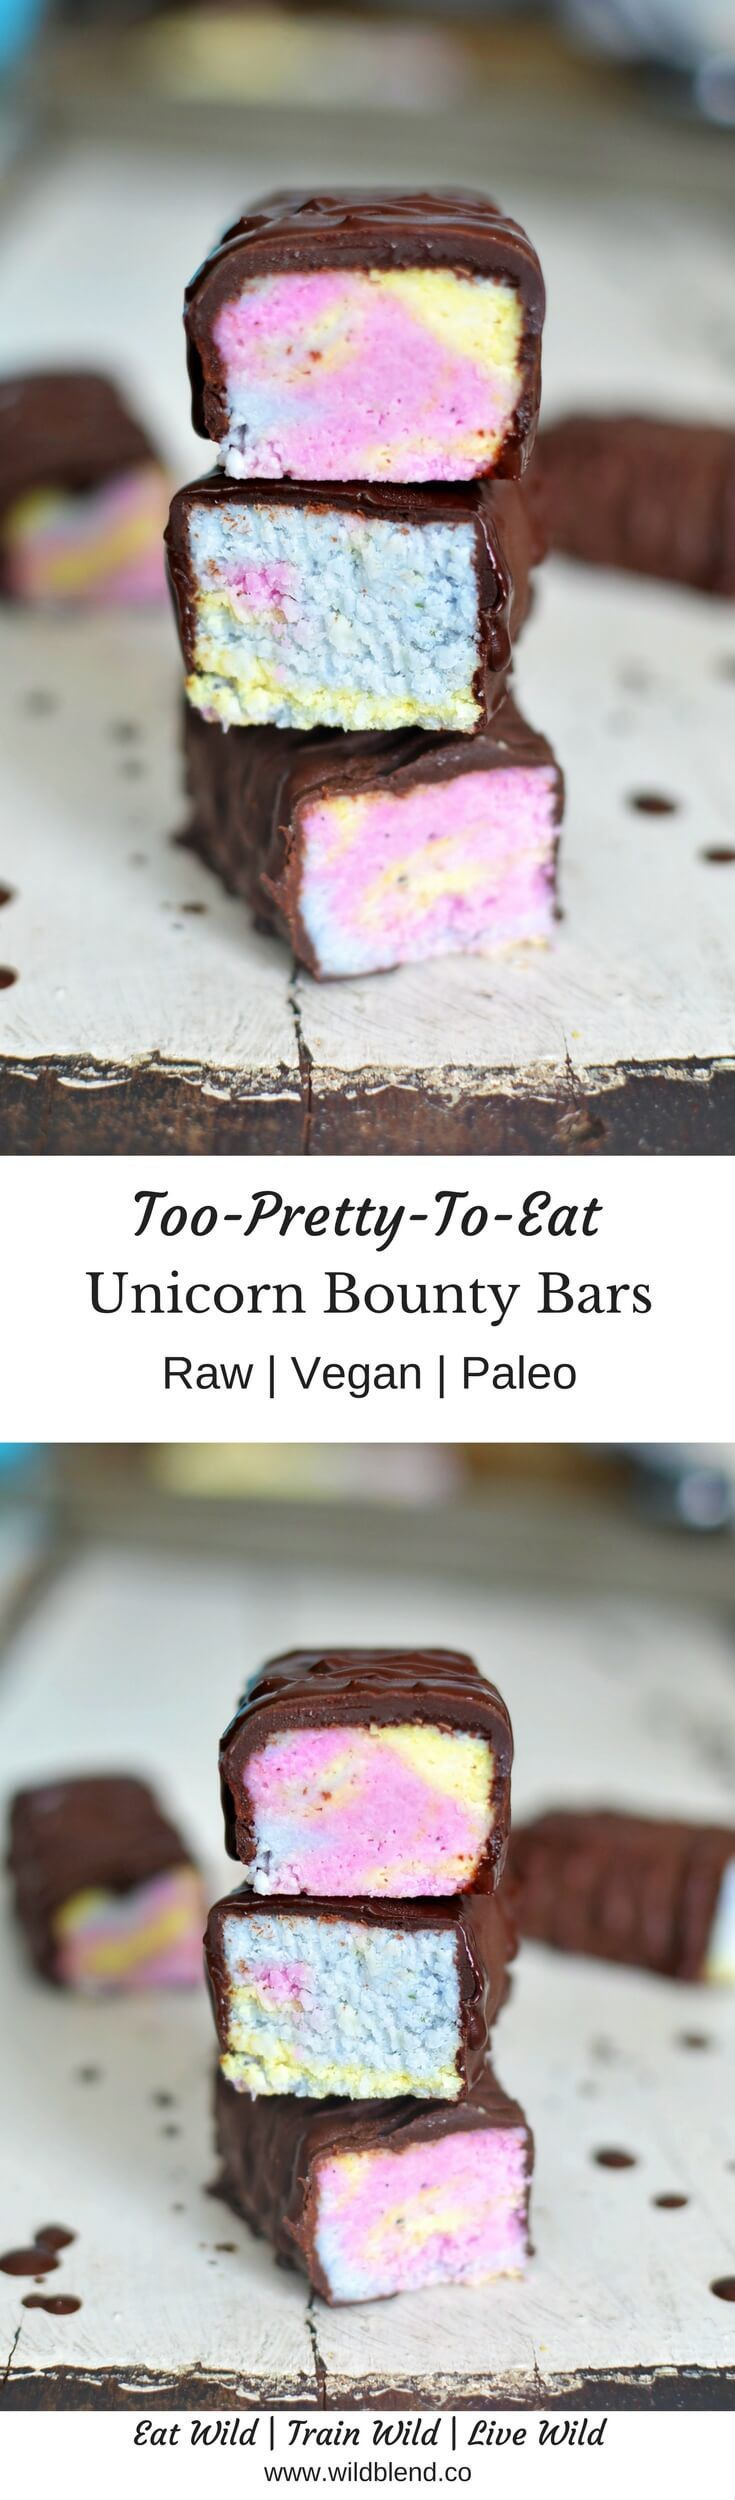 These Unicorn Bounty Bars add sparkle and magic to your life while keeping it naturally healthy. Sans refined sugar or artificial colouring and flavoring! Get the recipe here: http://www.wildblend.co/single-post/2017/05/17/Too-Pretty-To-Eat-Unicorn-Bounty-Bars